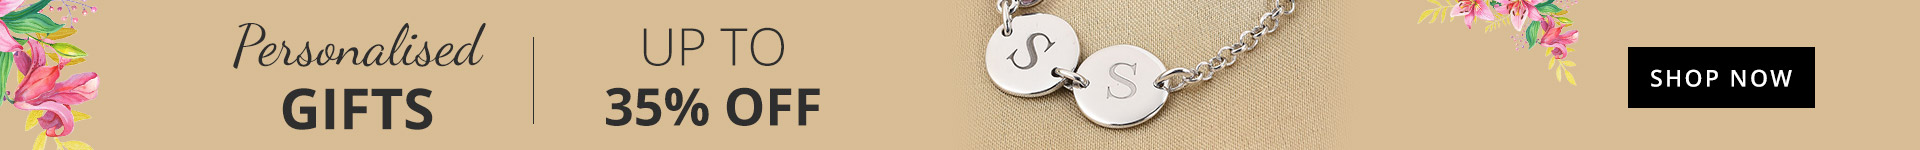 TJC - Jewellery, Beauty and Lifestyle Shop